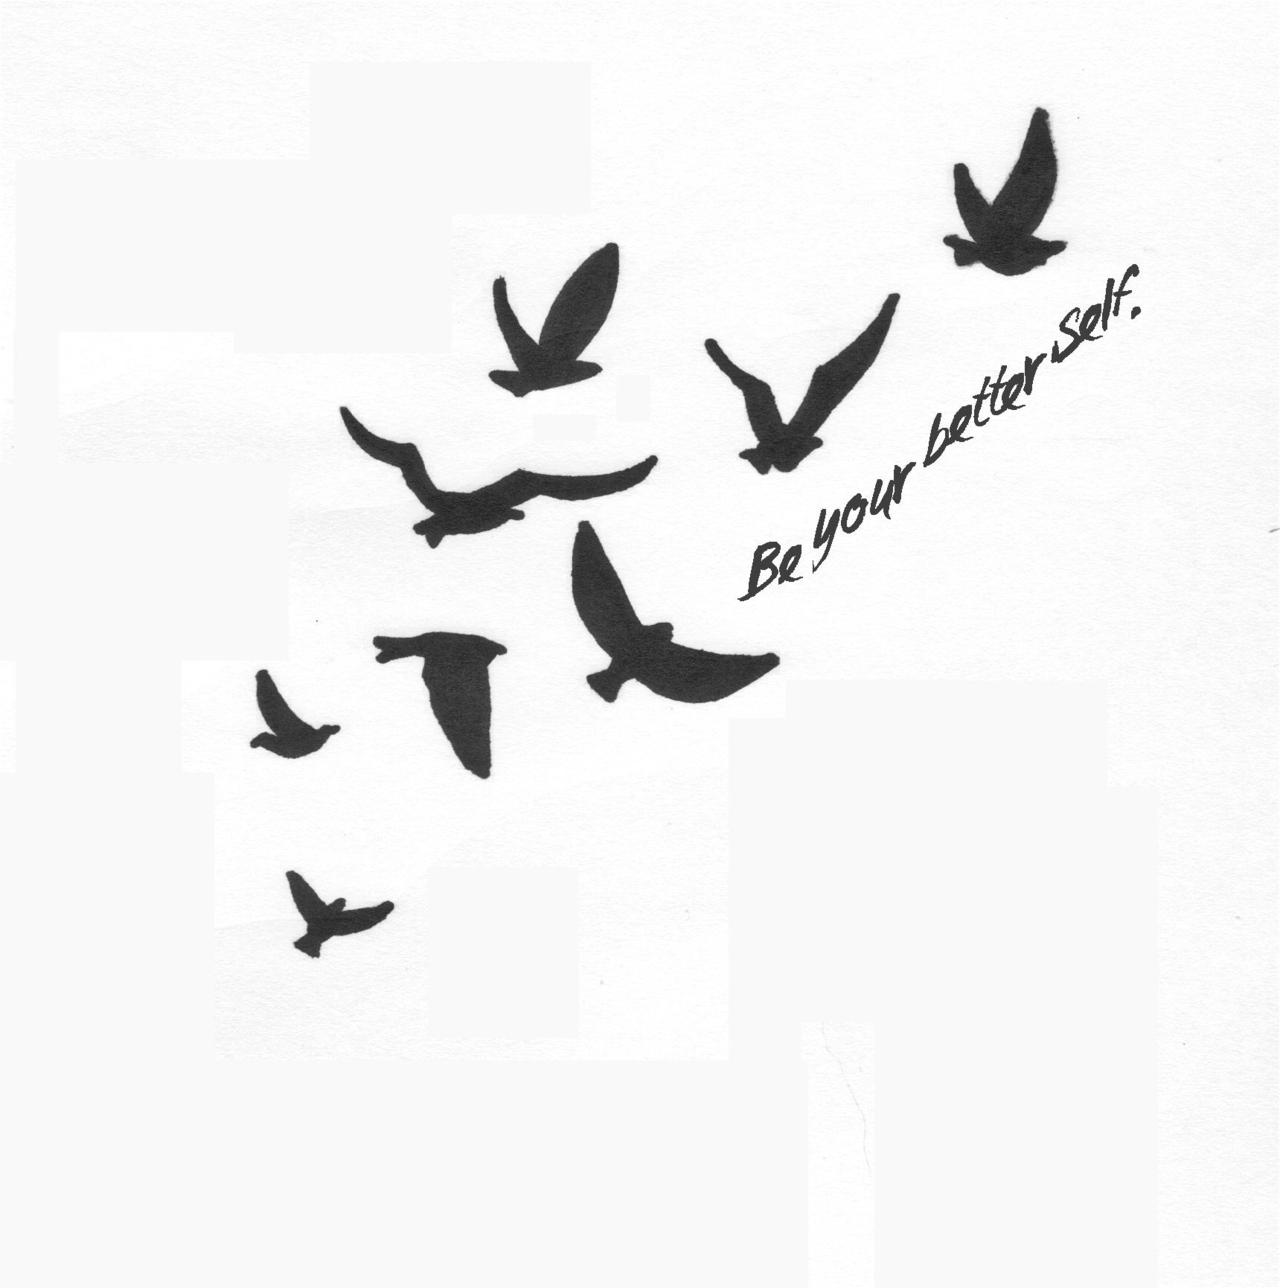 Flying Bird Tattoos Designs, Ideas and Meaning | Tattoos ...